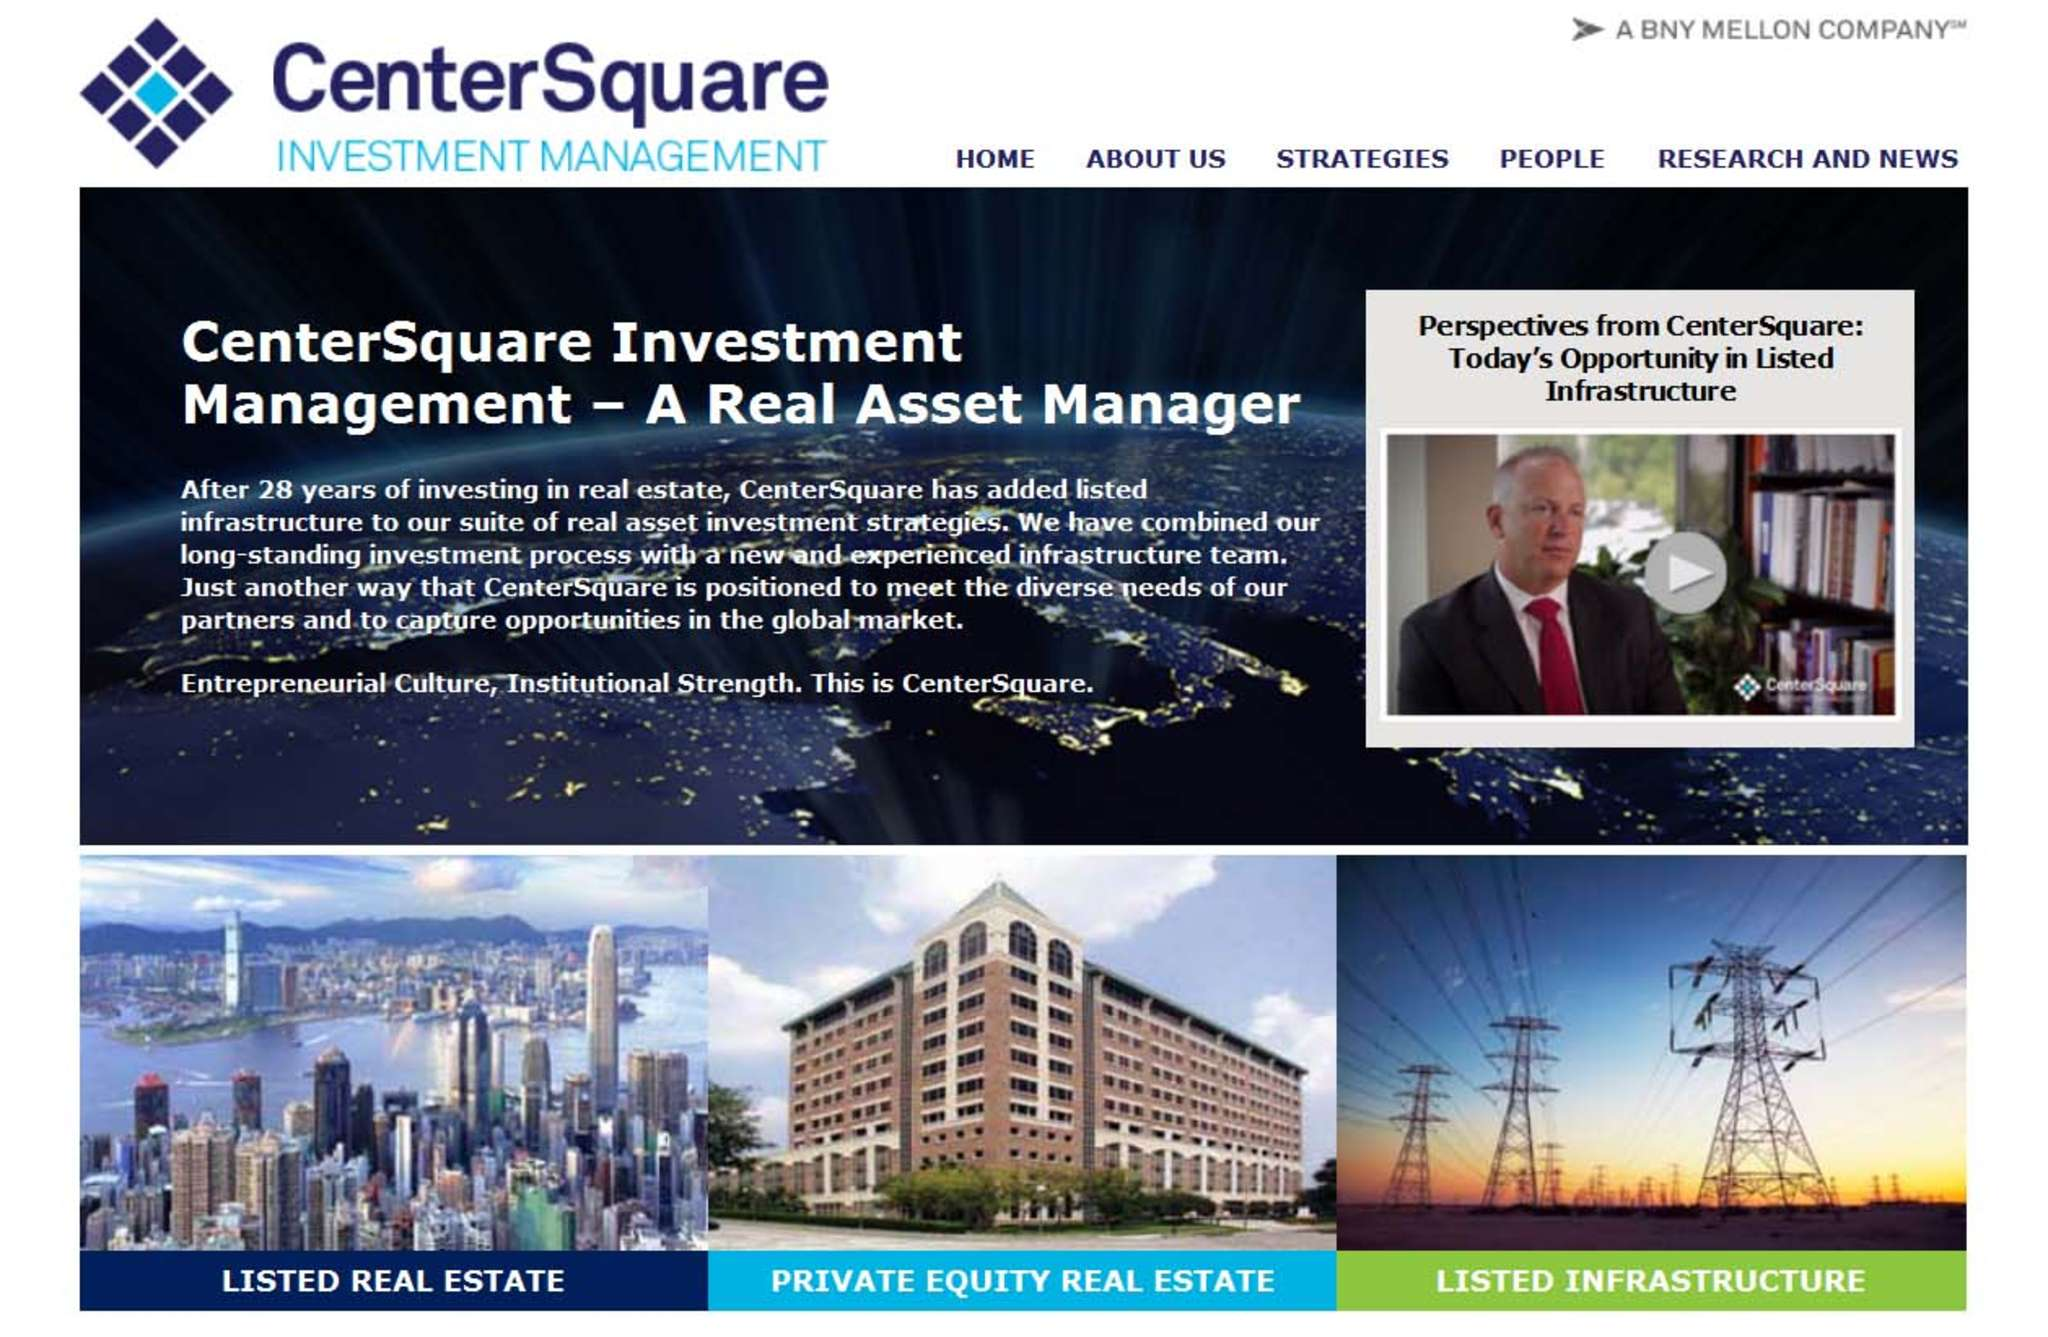 CenterSquare Investment Management, based in Plymouth Meeting.